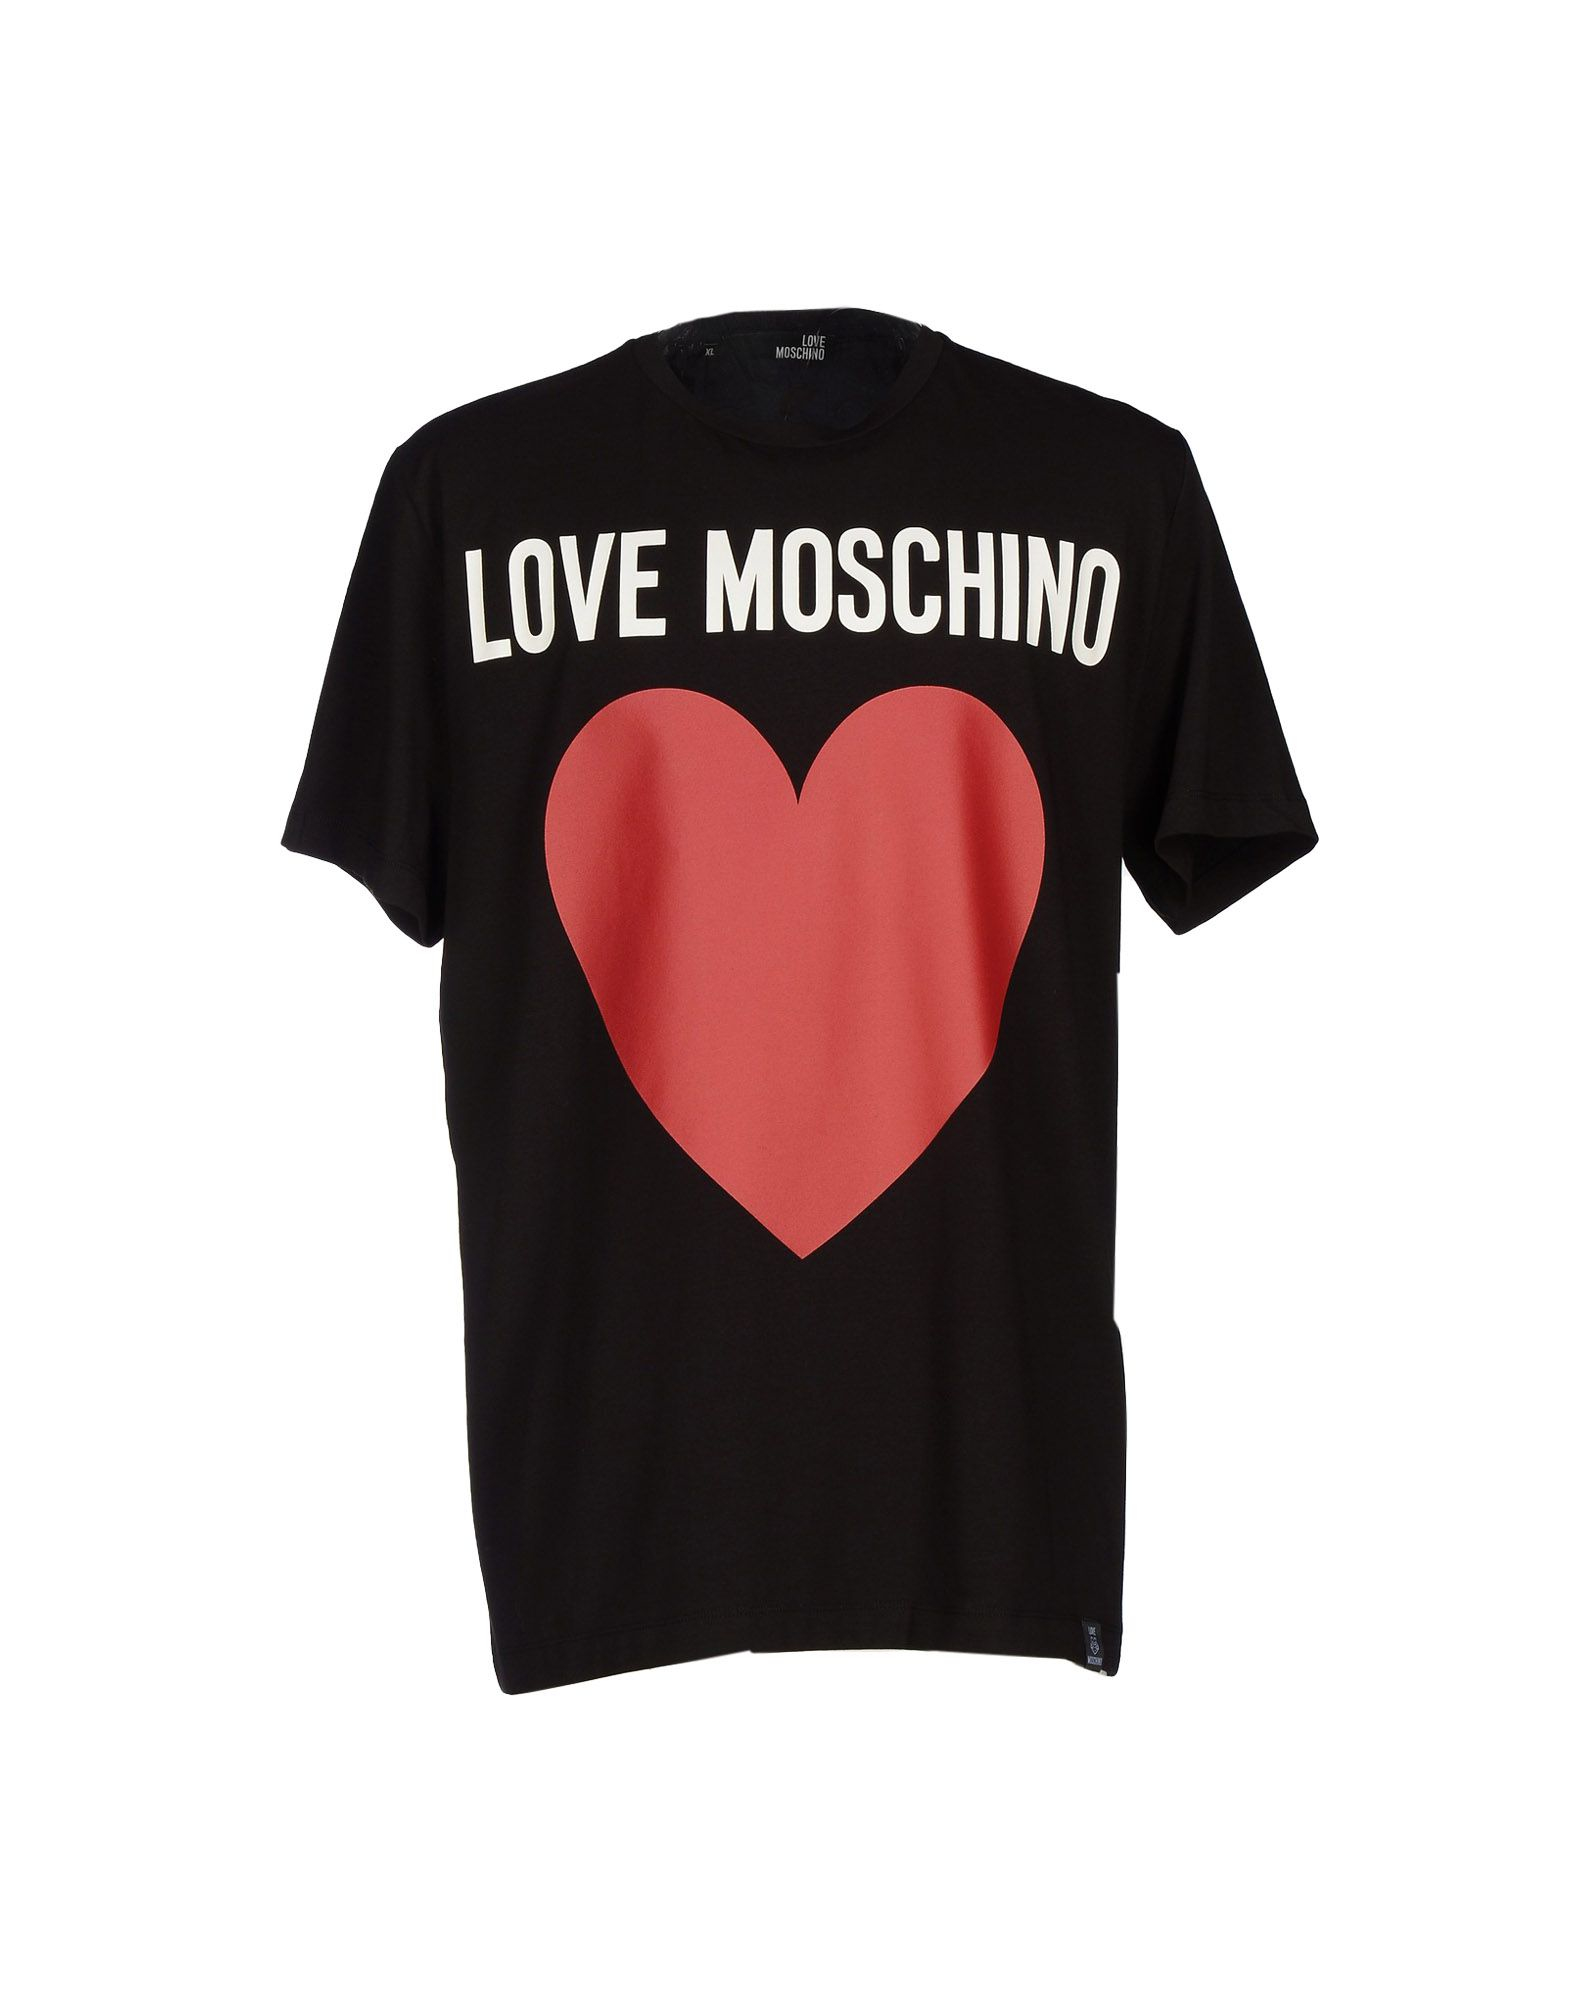 lyst love moschino t shirt in black for men. Black Bedroom Furniture Sets. Home Design Ideas